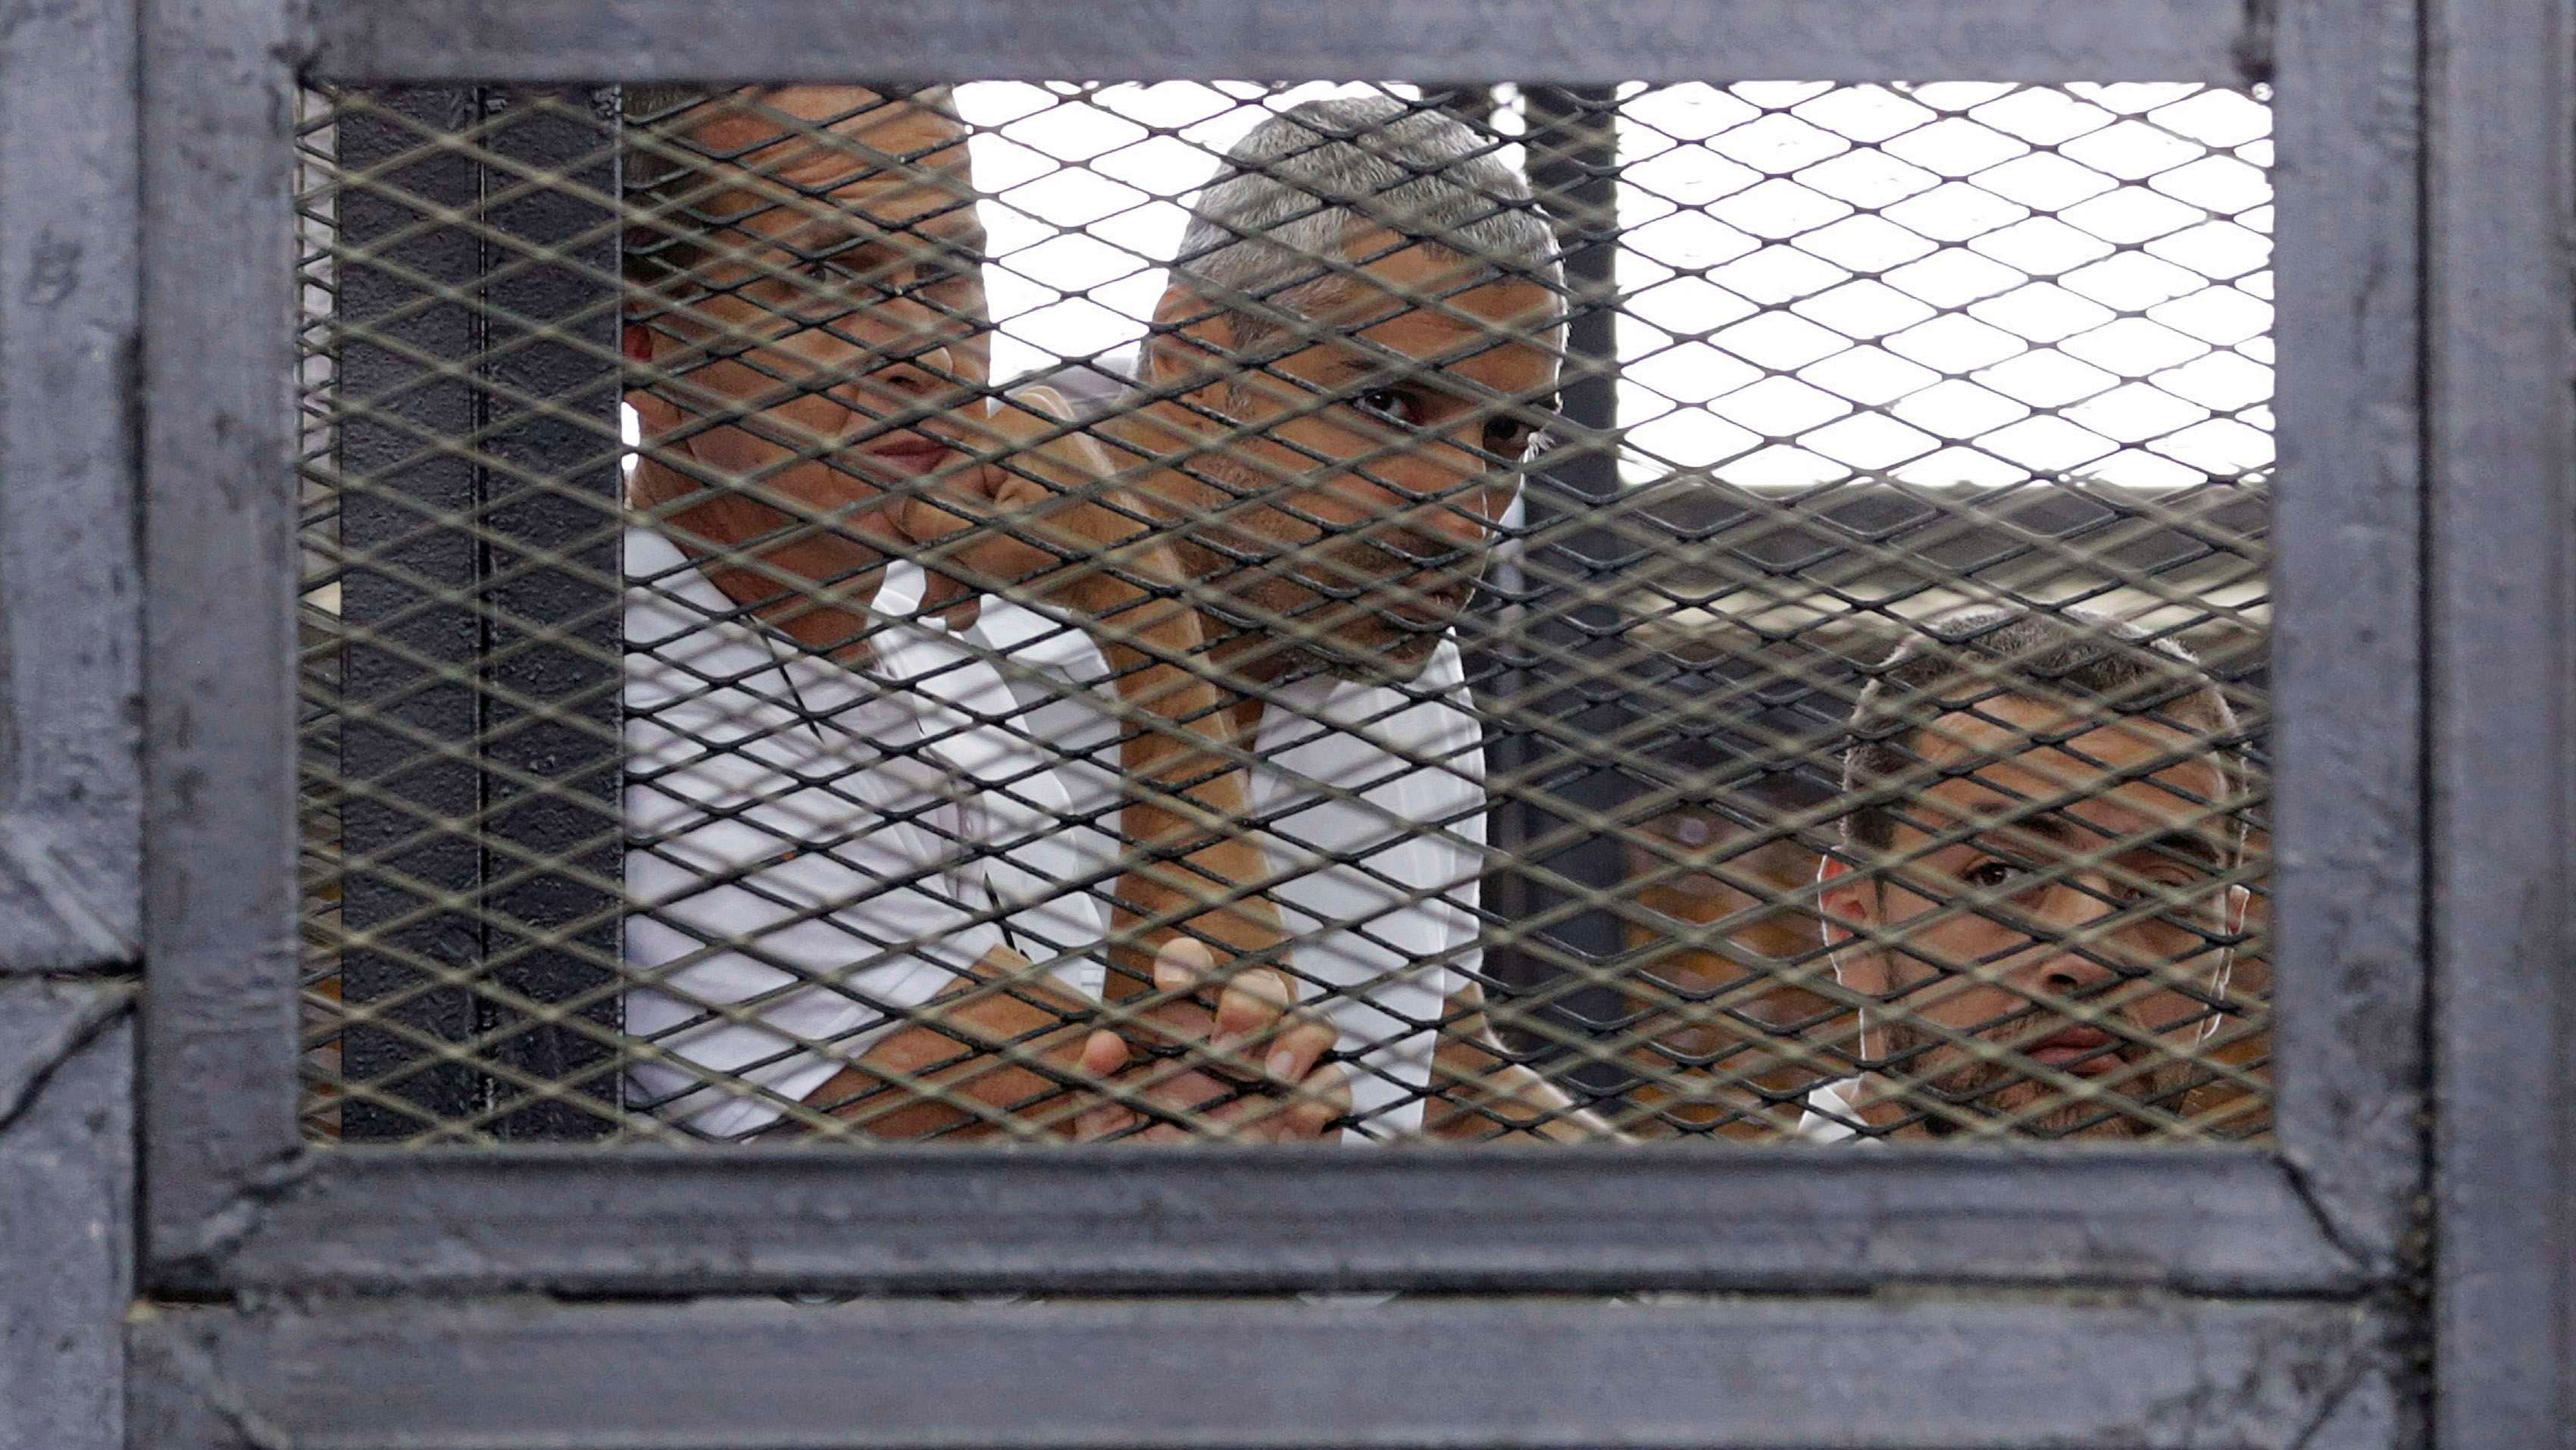 Lawyers Request Maximum Sentence For Al Jazeera Journalists on Trial in Egypt